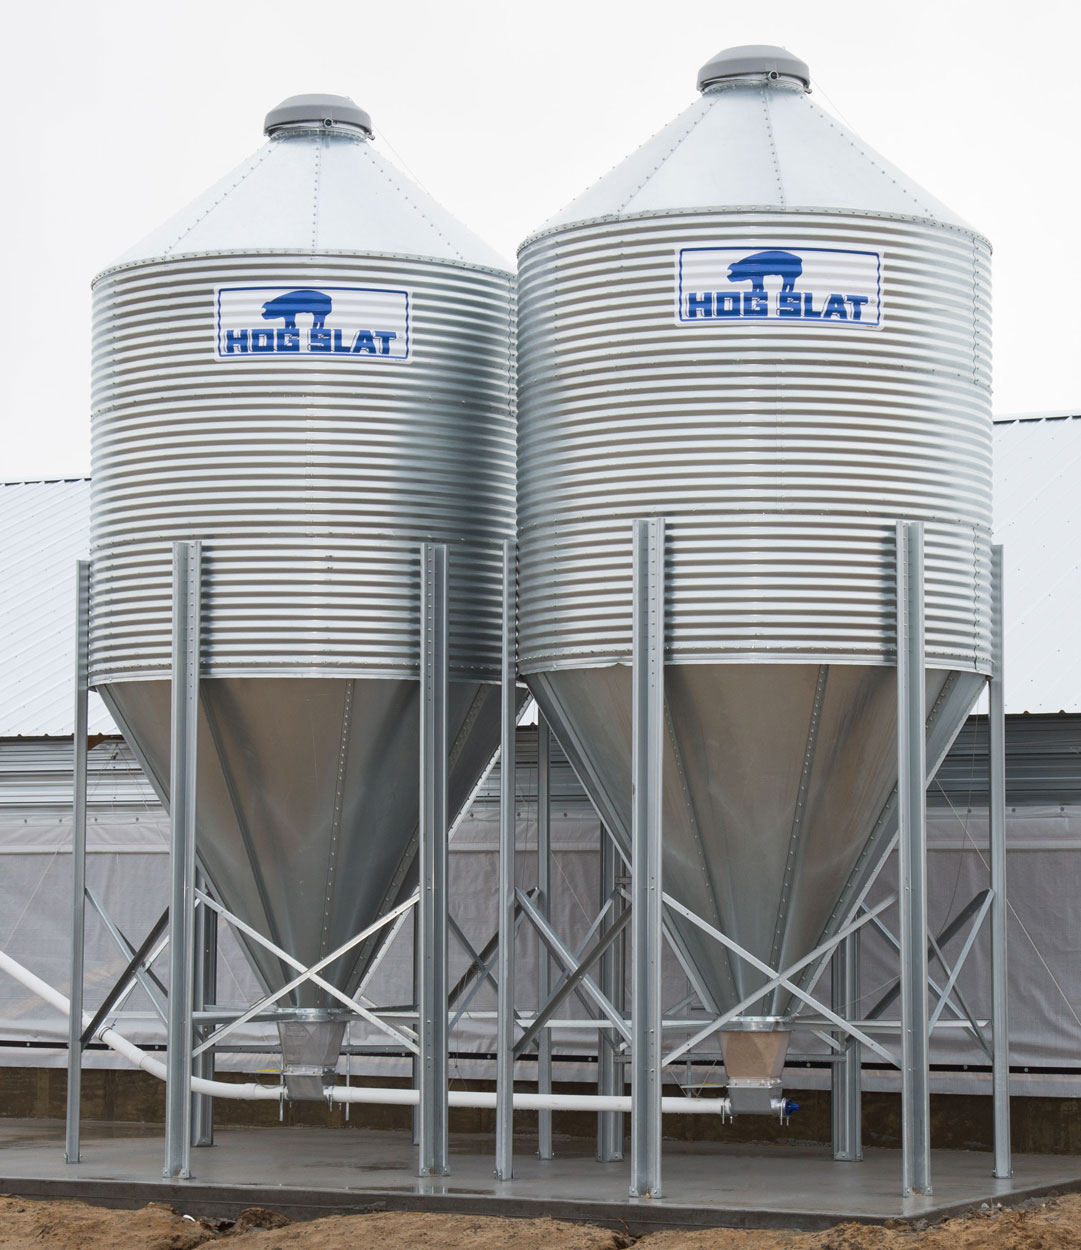 Hog Slat feed bins are available in many different sizes and capacities to provide storage solutions for your operation.